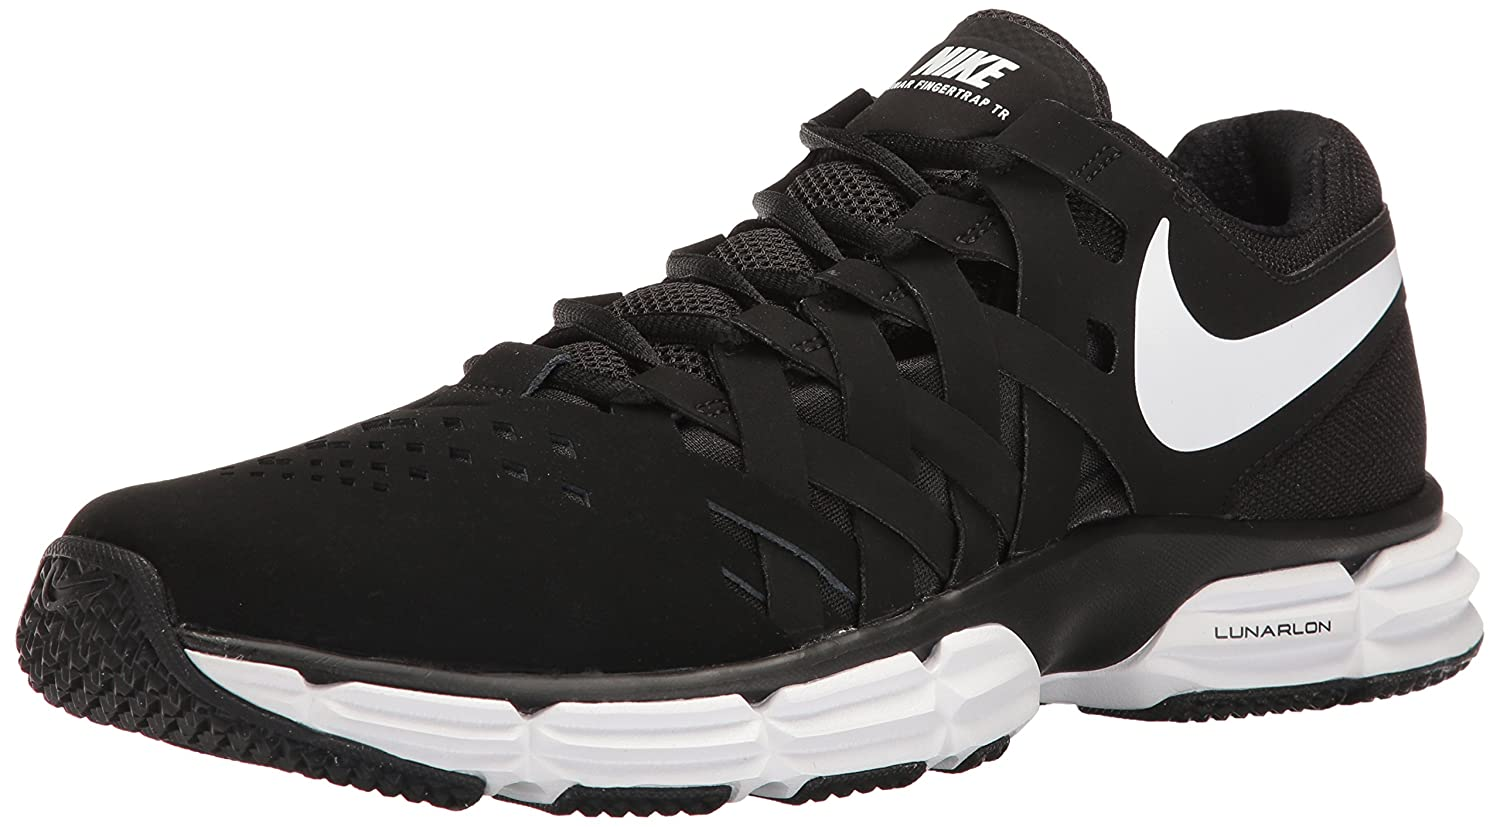 NIKE Men's Lunar Fingertrap Cross Trainer B00B3D12RI 15 4E US|Black/White - Black